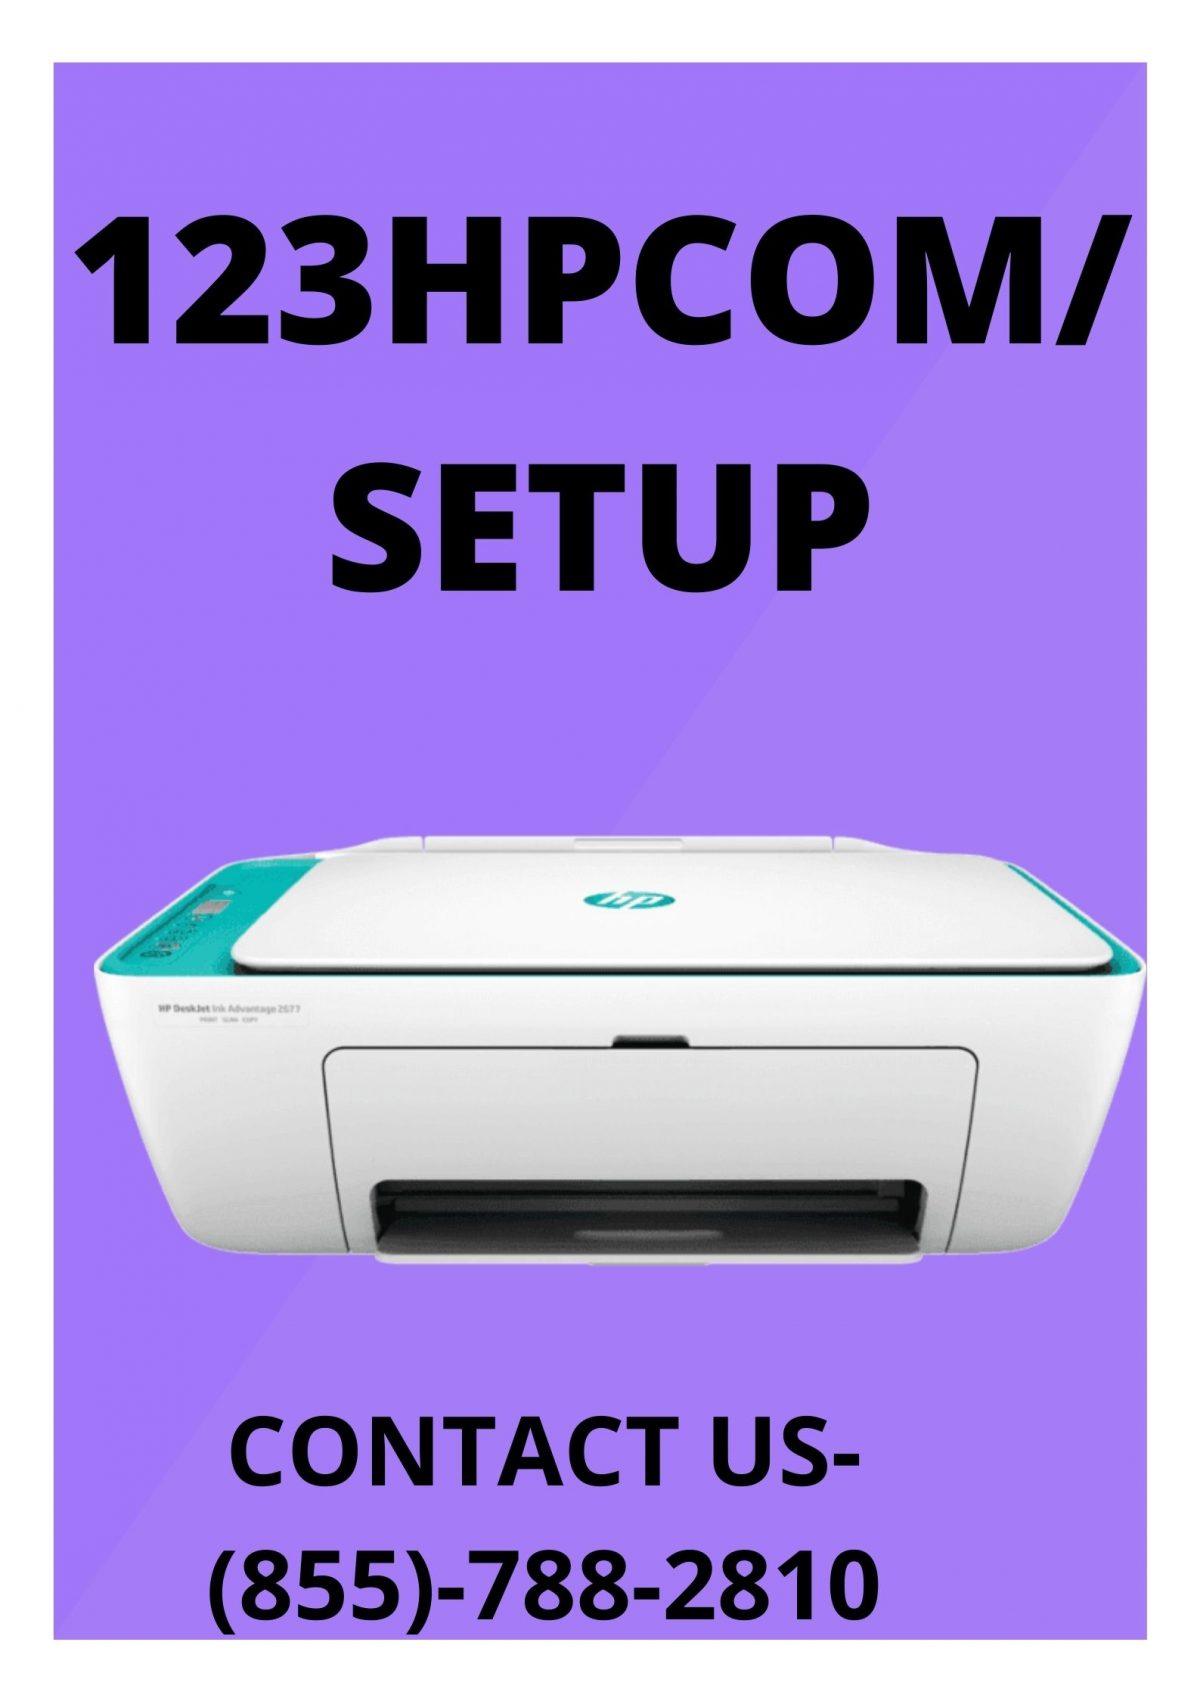 What should I do to Connect HP Officejet 6950 Printer to Wifi?